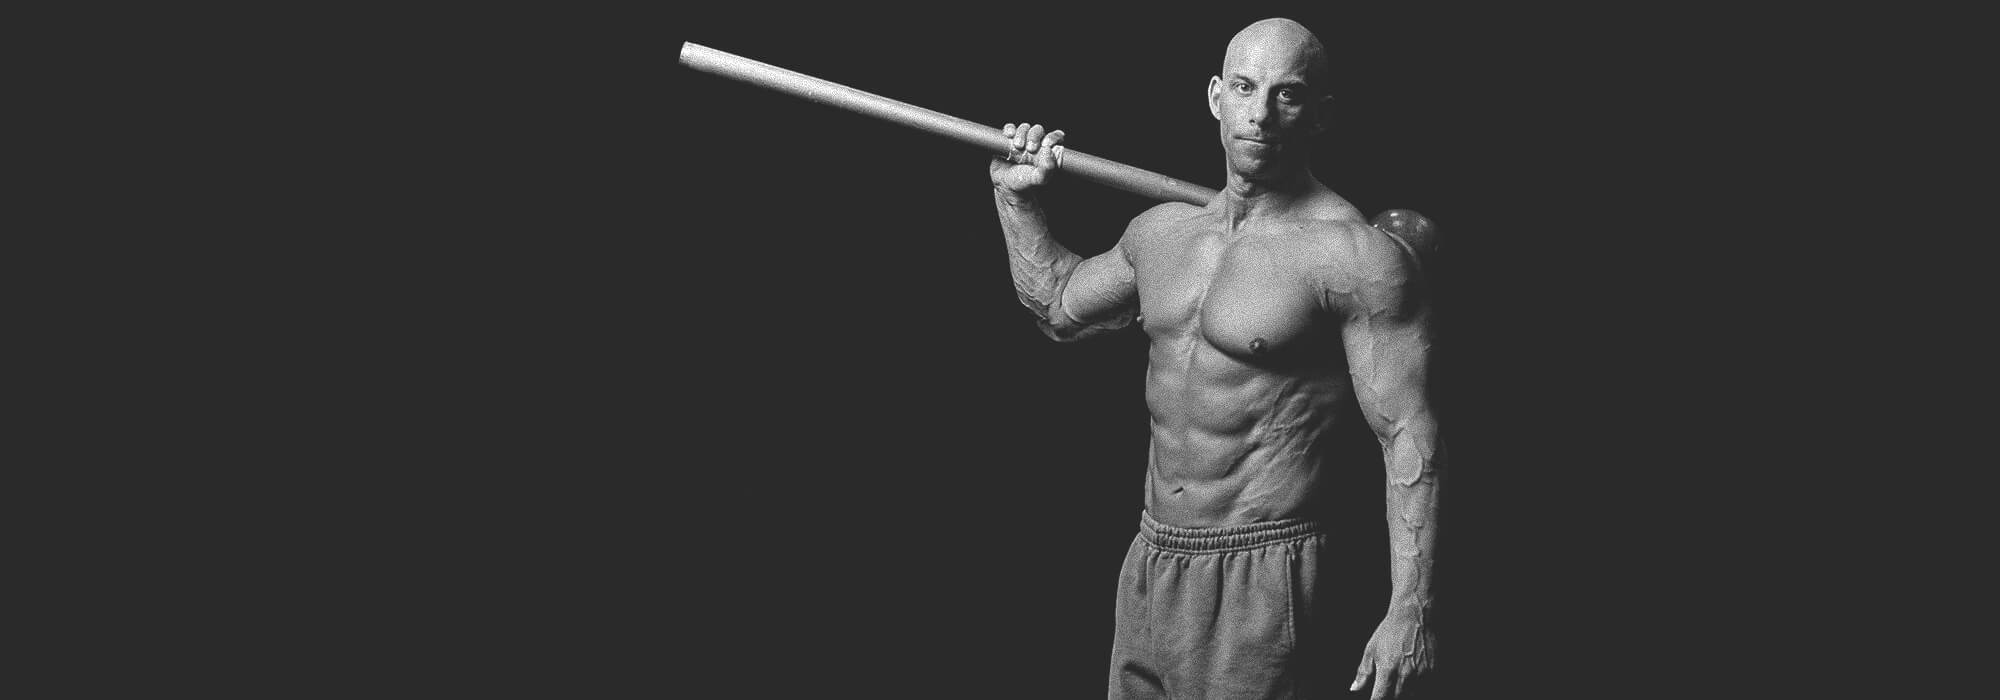 Online consult with Christian Thibaudeau